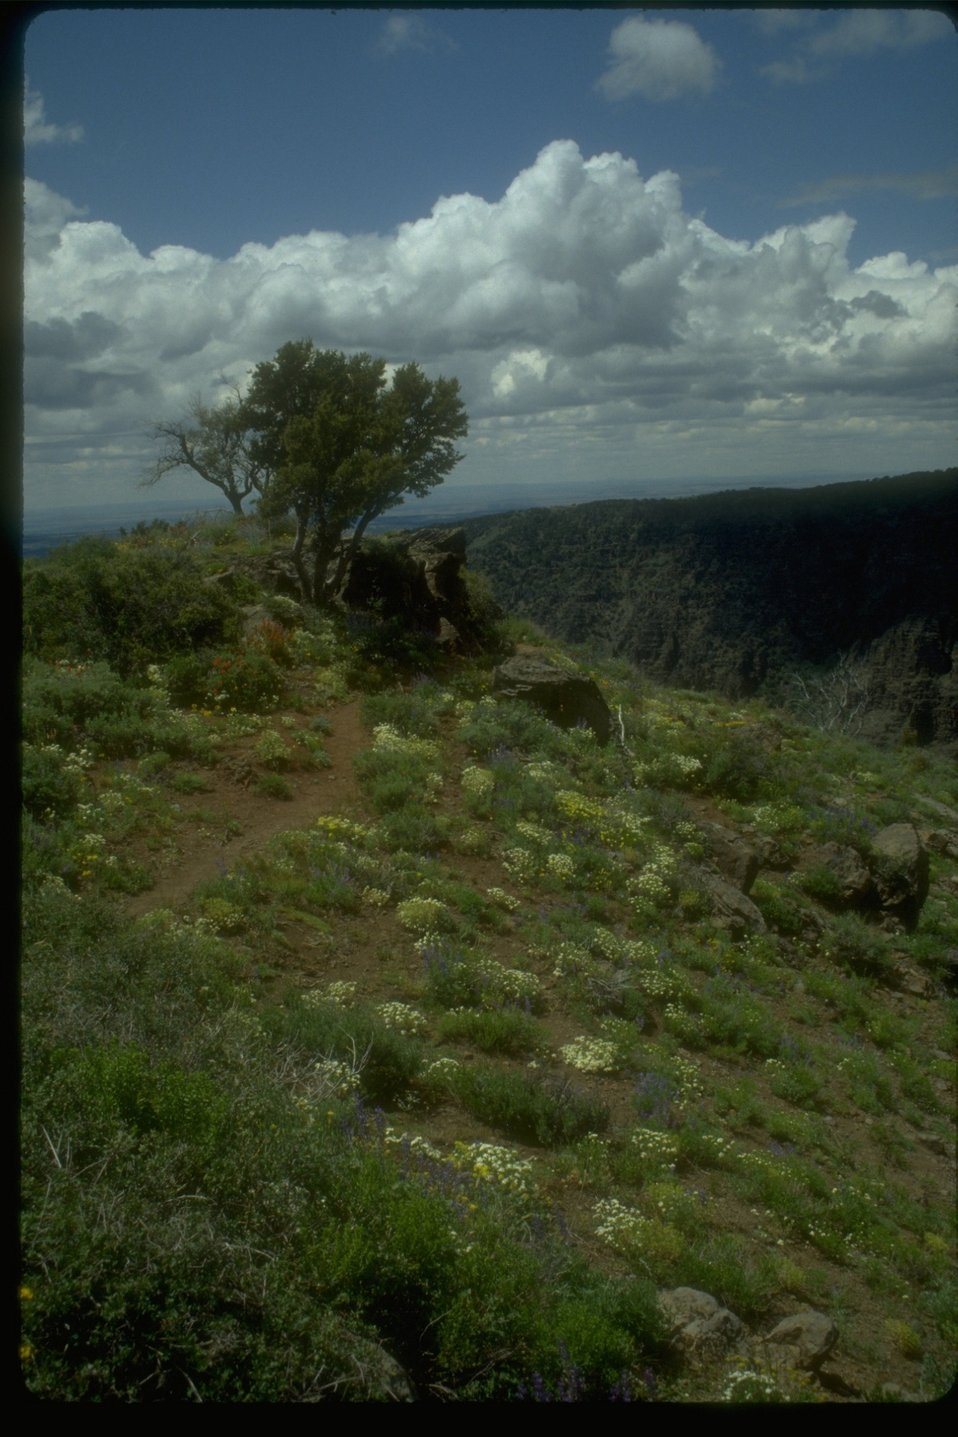 Lone shrub along the canyon rim.  Leading up to the bush are wildflowers and clumps of grass with scattered rocks.